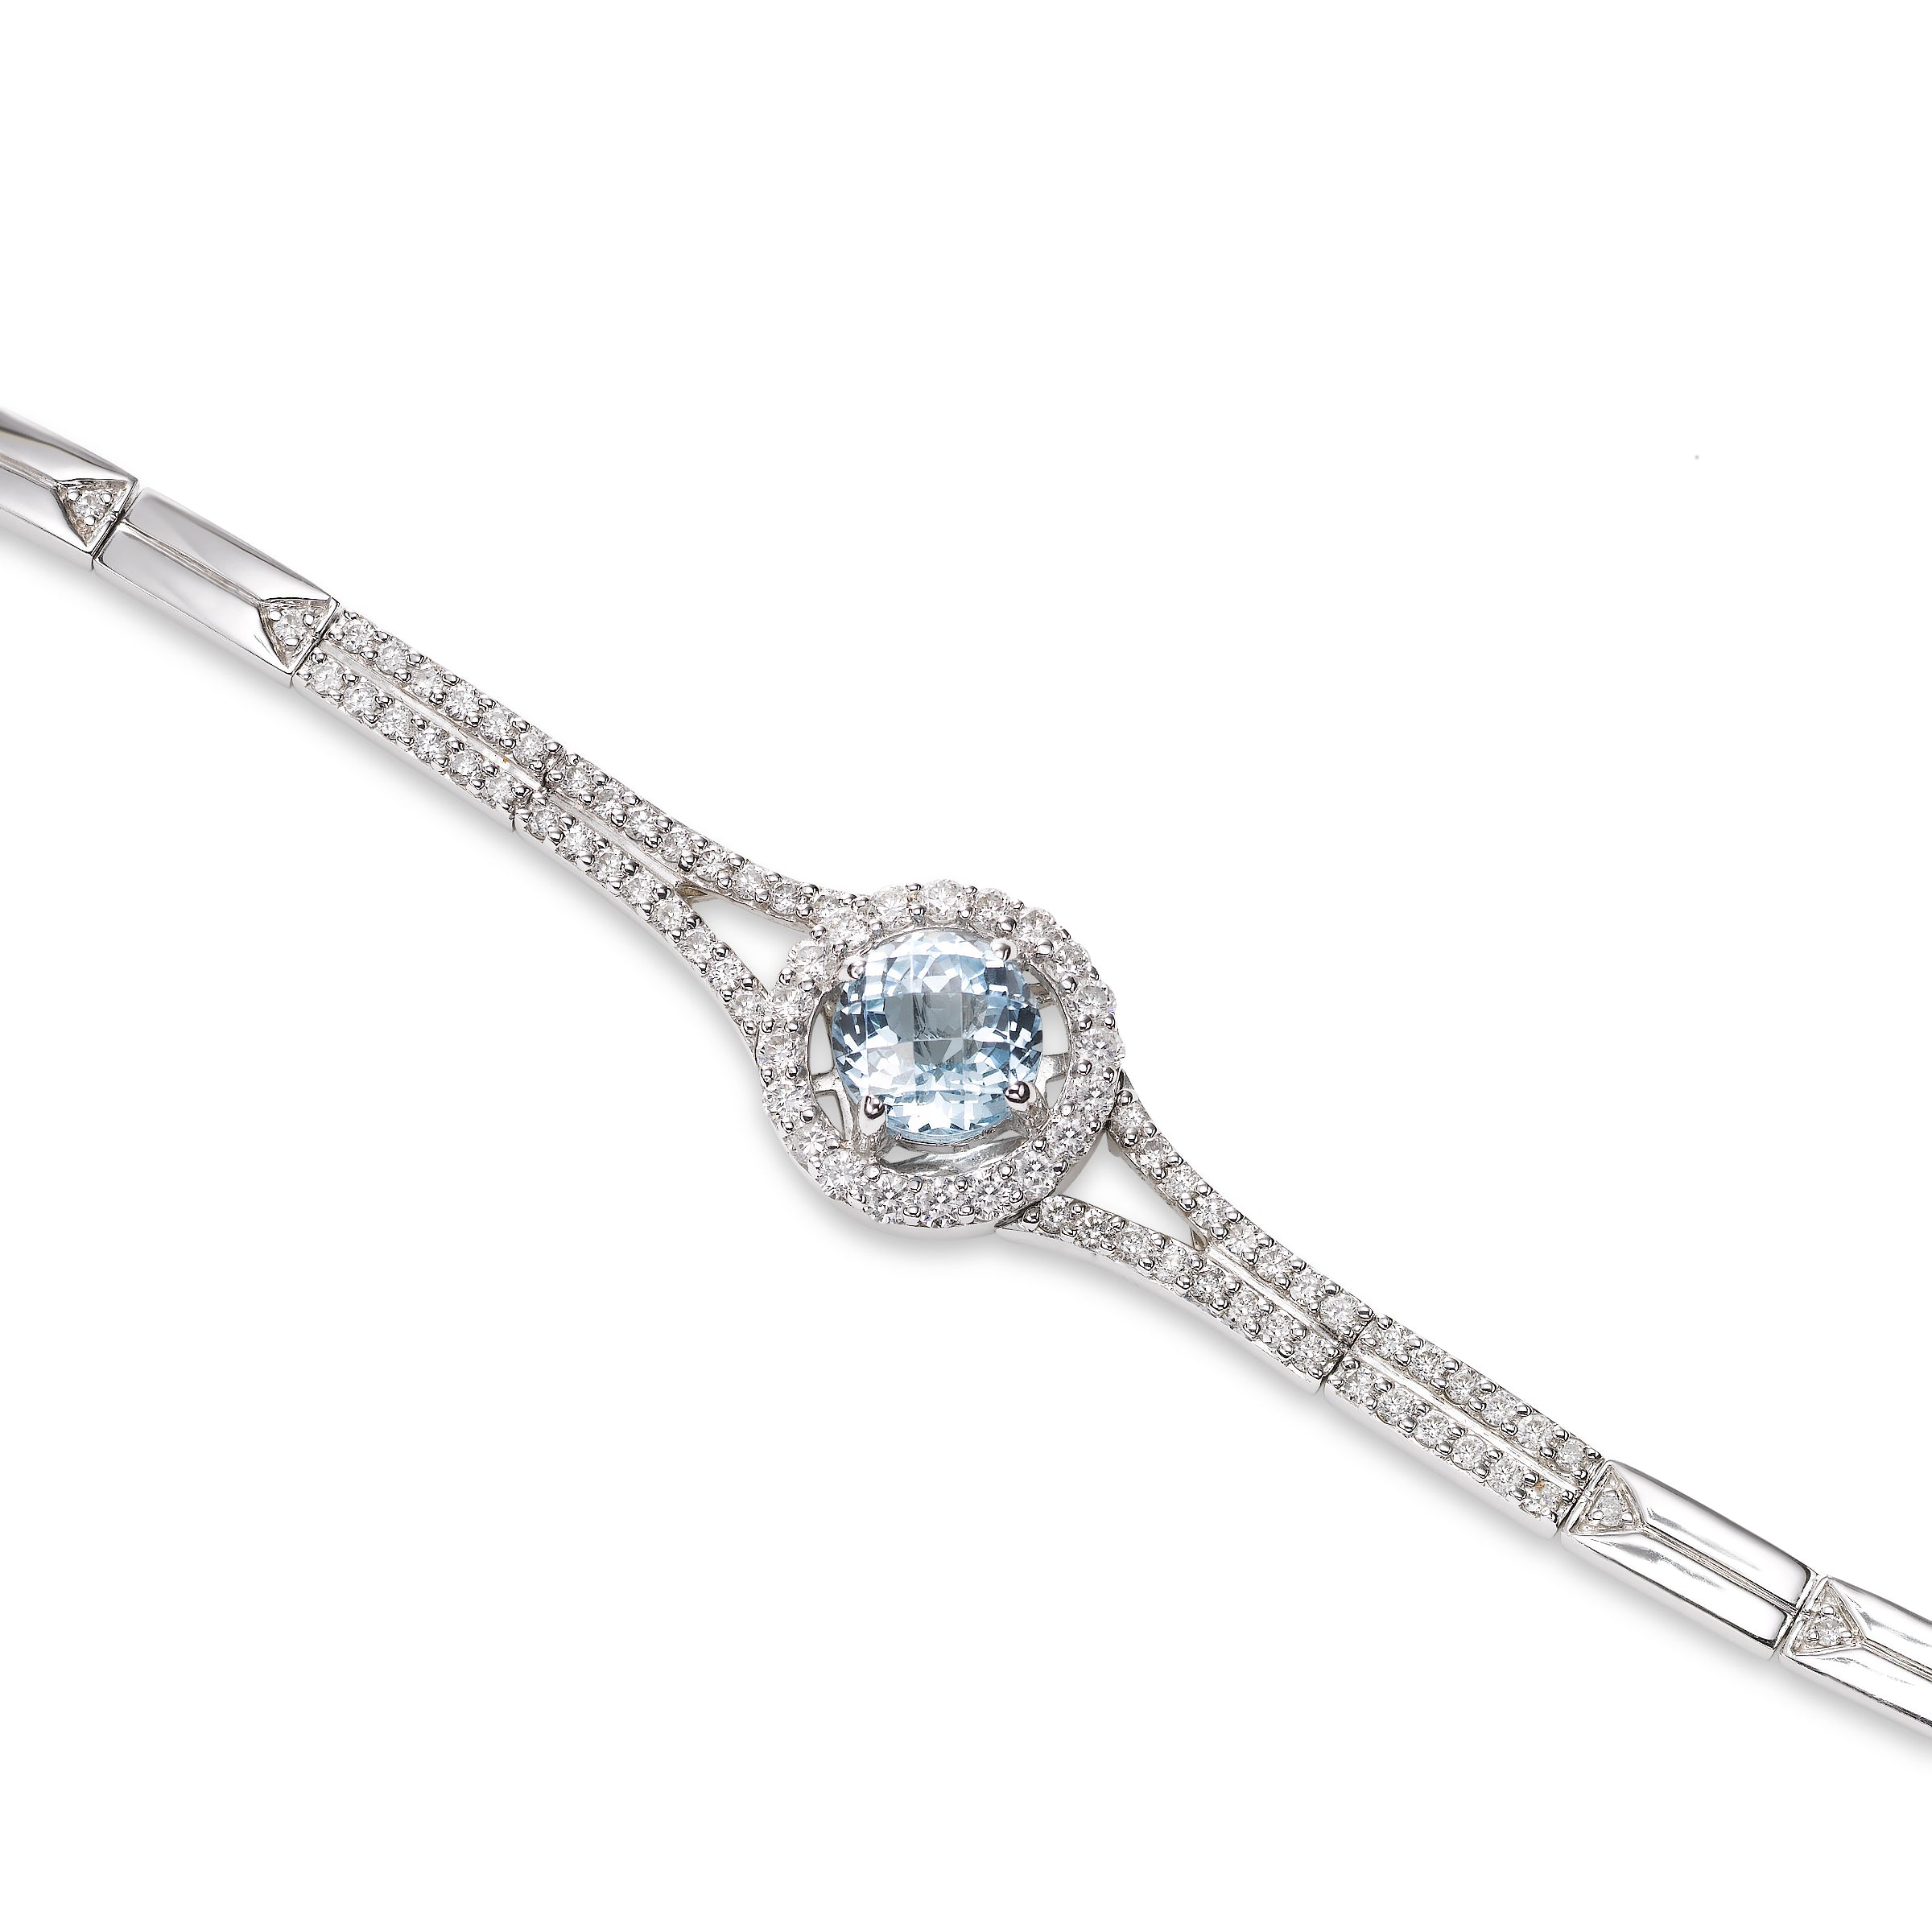 Blue Topaz and Diamond Bracelet, 18K White Gold